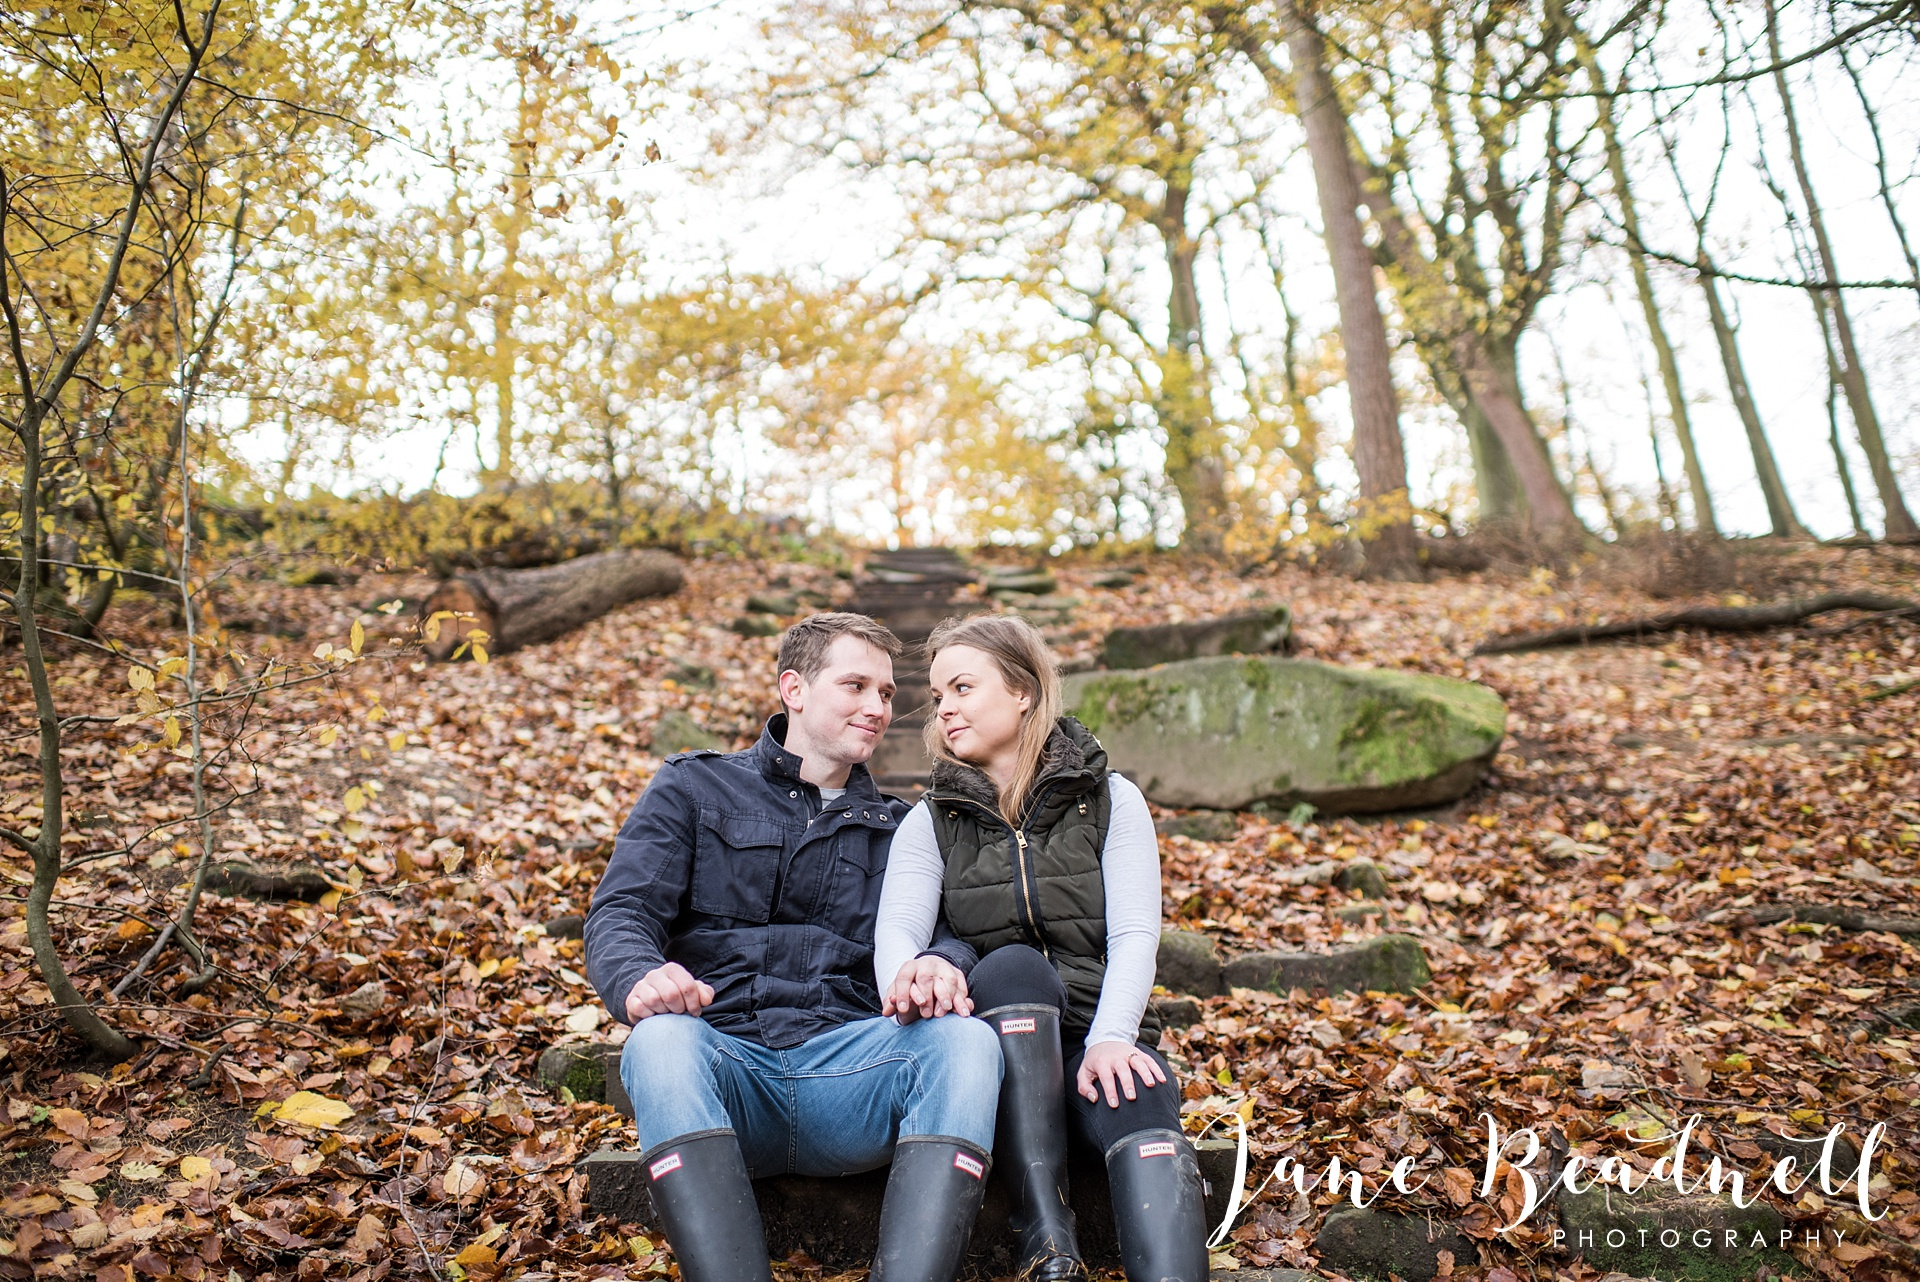 engagement-shoot-yorkshire-wedding-photographer-jane-beadnell-photography-uk-and-destination-wedding-photographer-engagement-shoot_0036